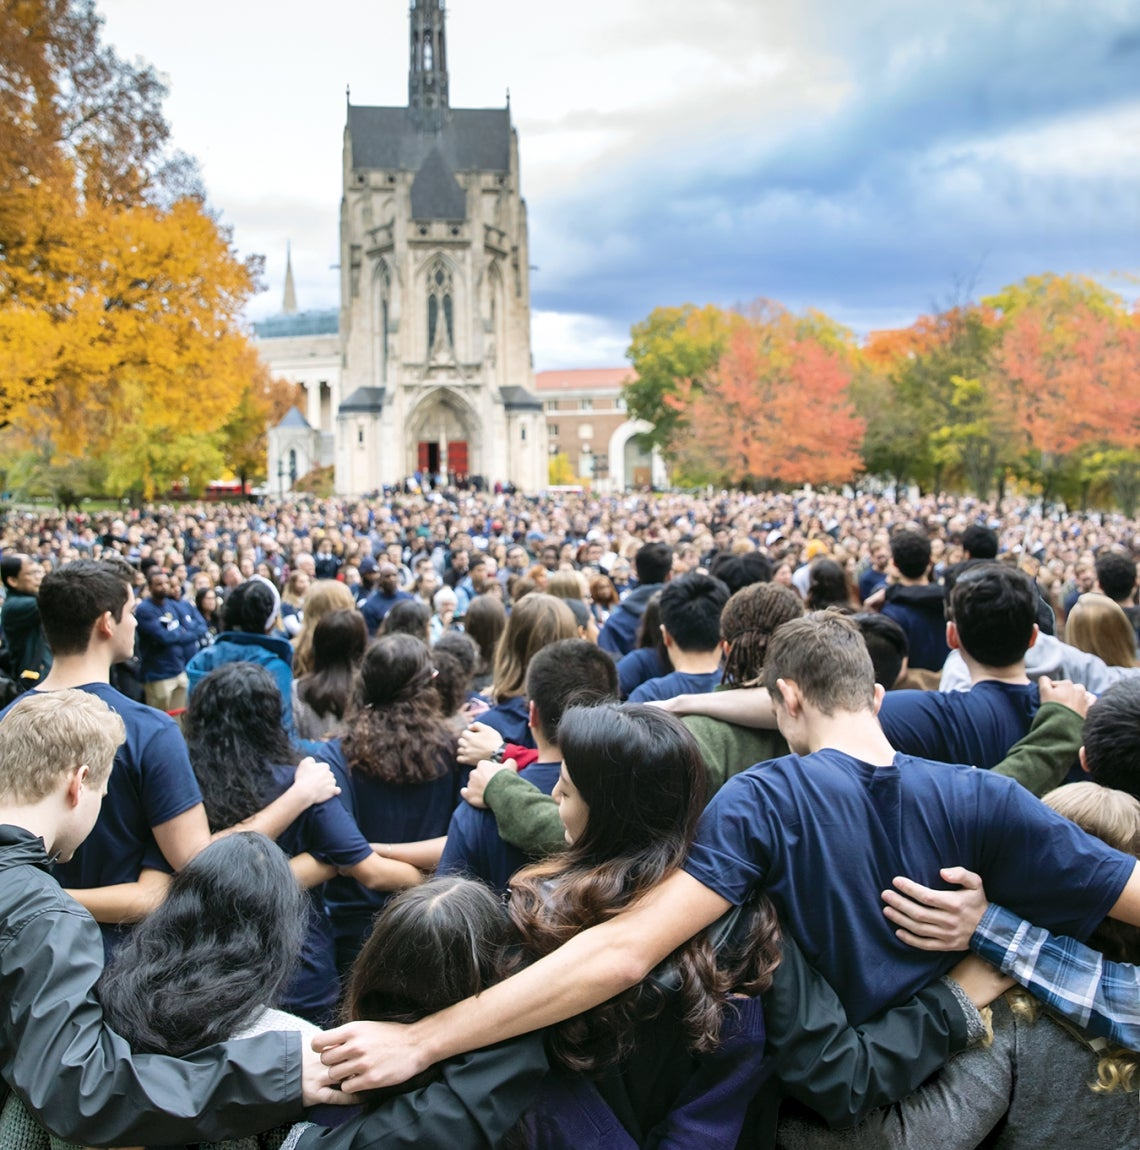 Pitt community members stand on Cathedral lawn and put arms around each other's shoulders.